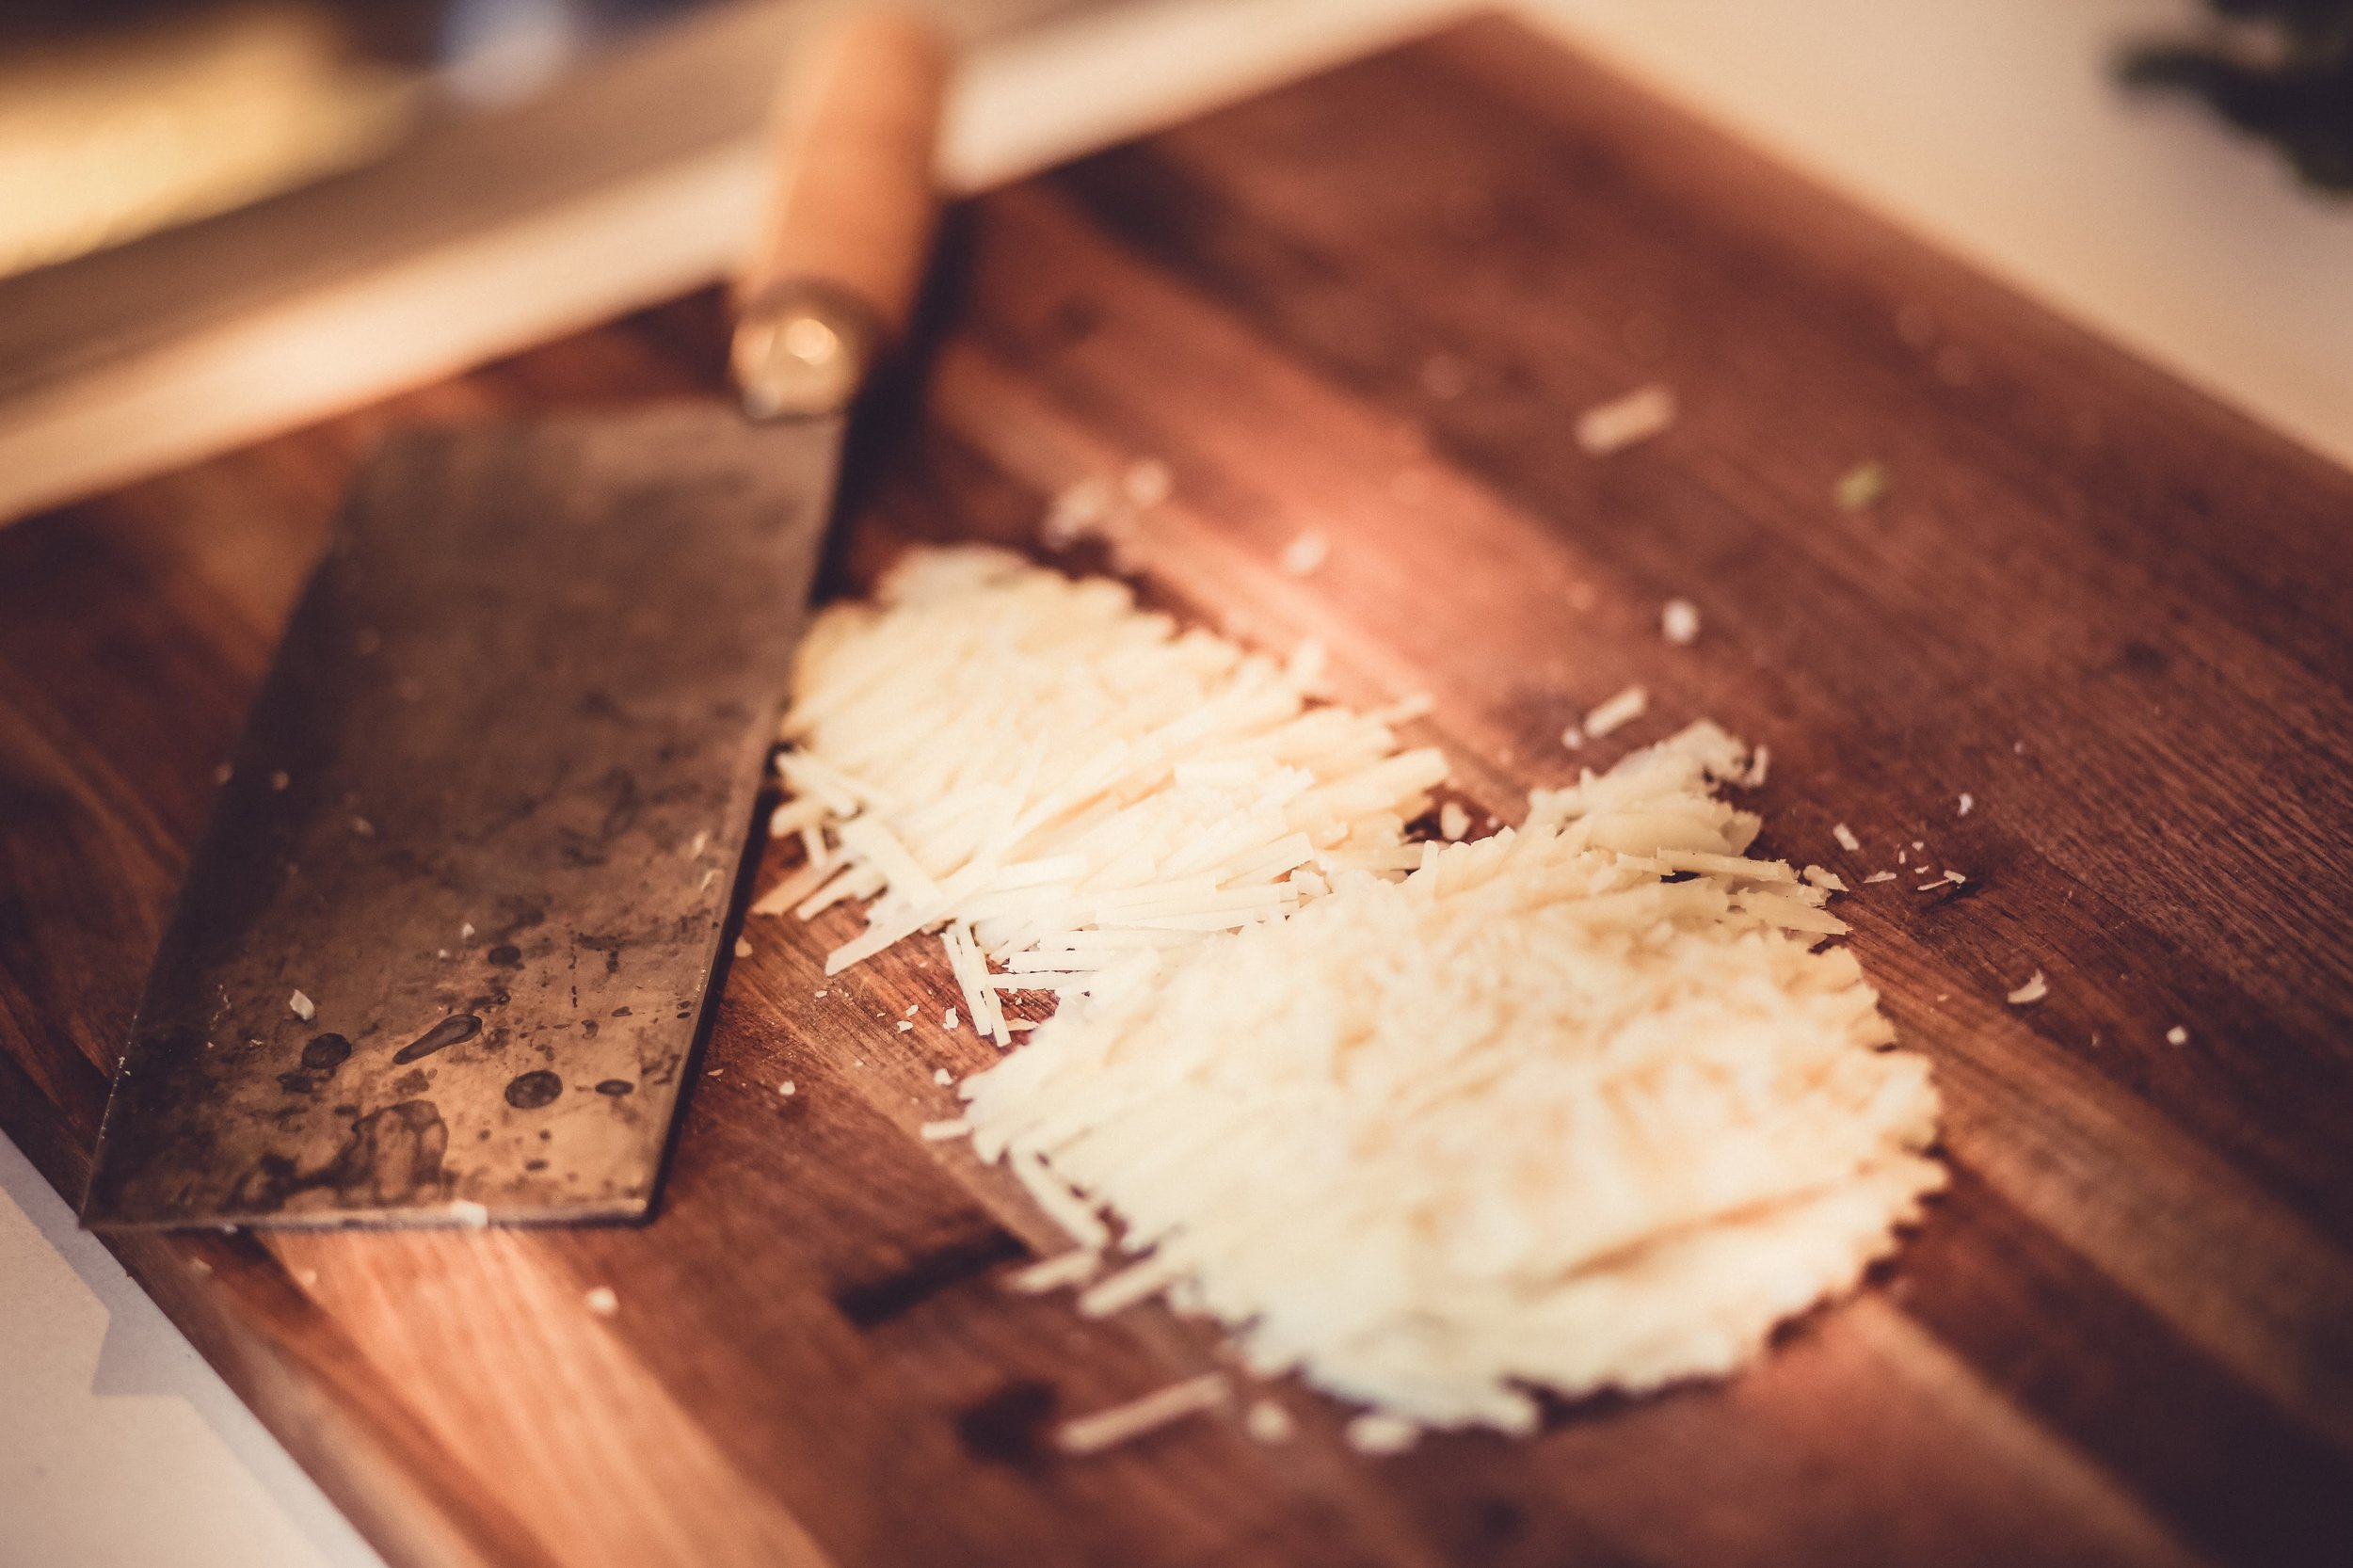 Some finely-chopped parmigiano!